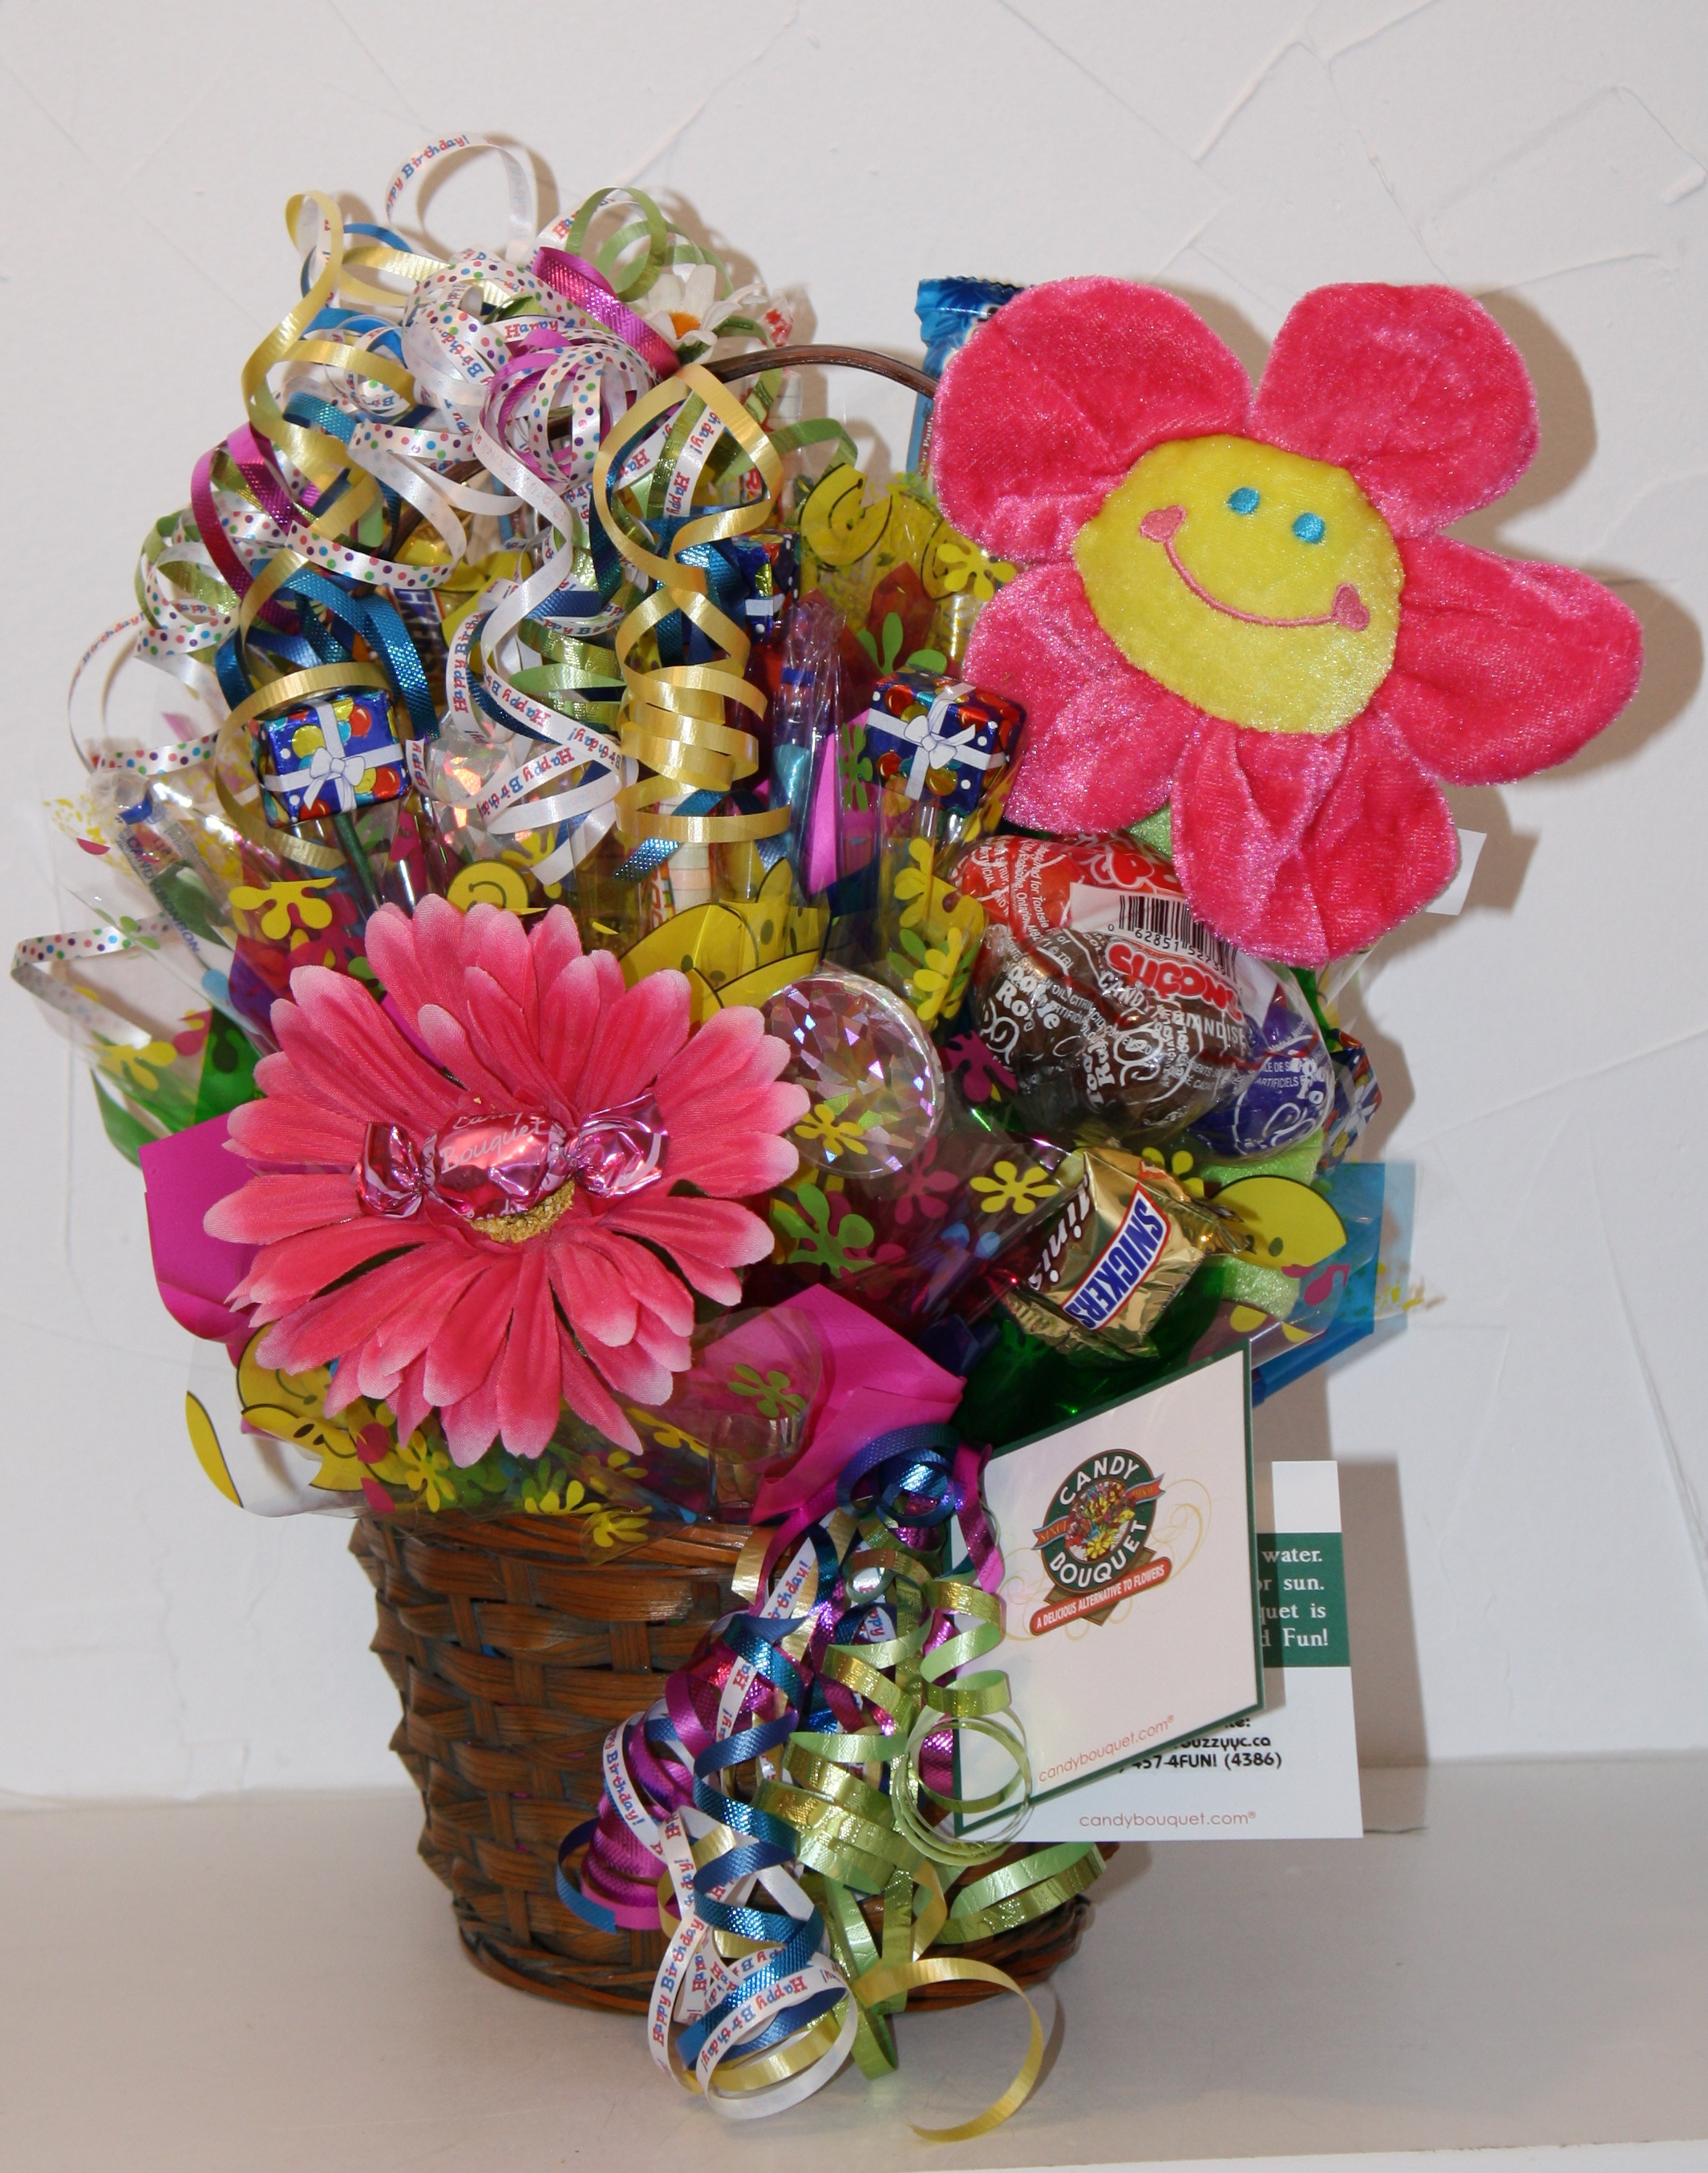 Basket of Sweets (2)